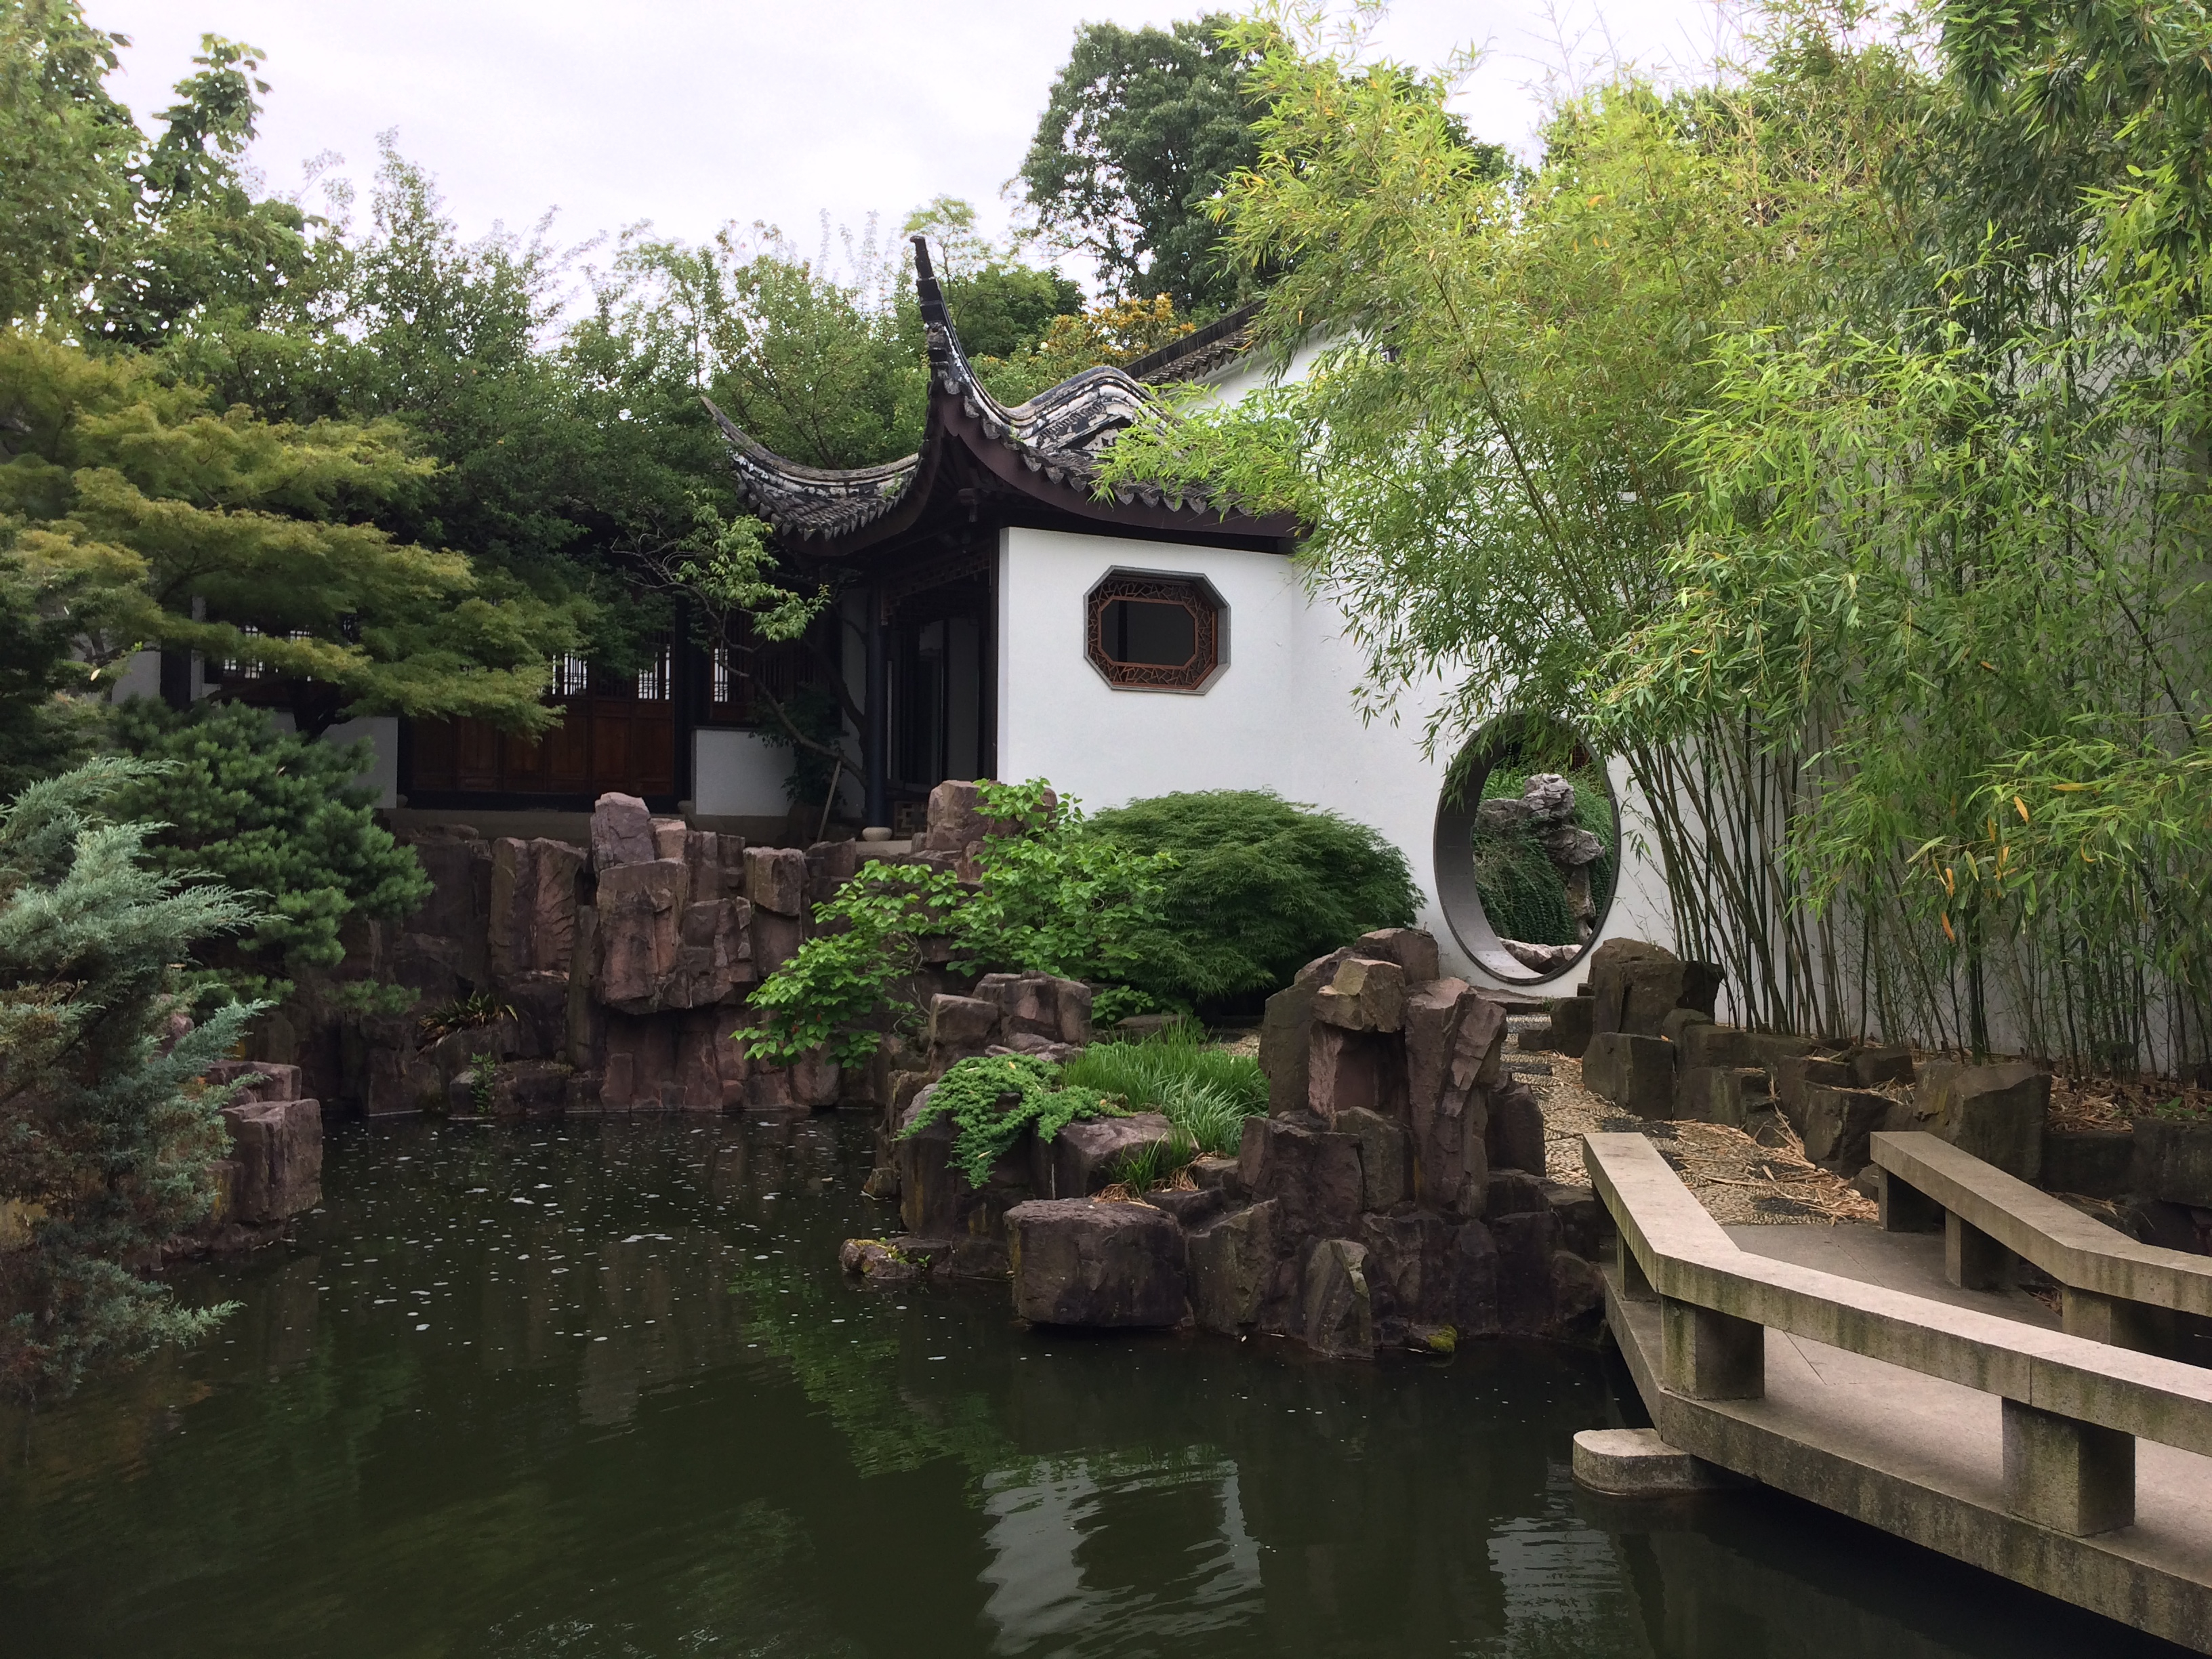 New York City's best secret gardens and hidden parks - Curbed NY